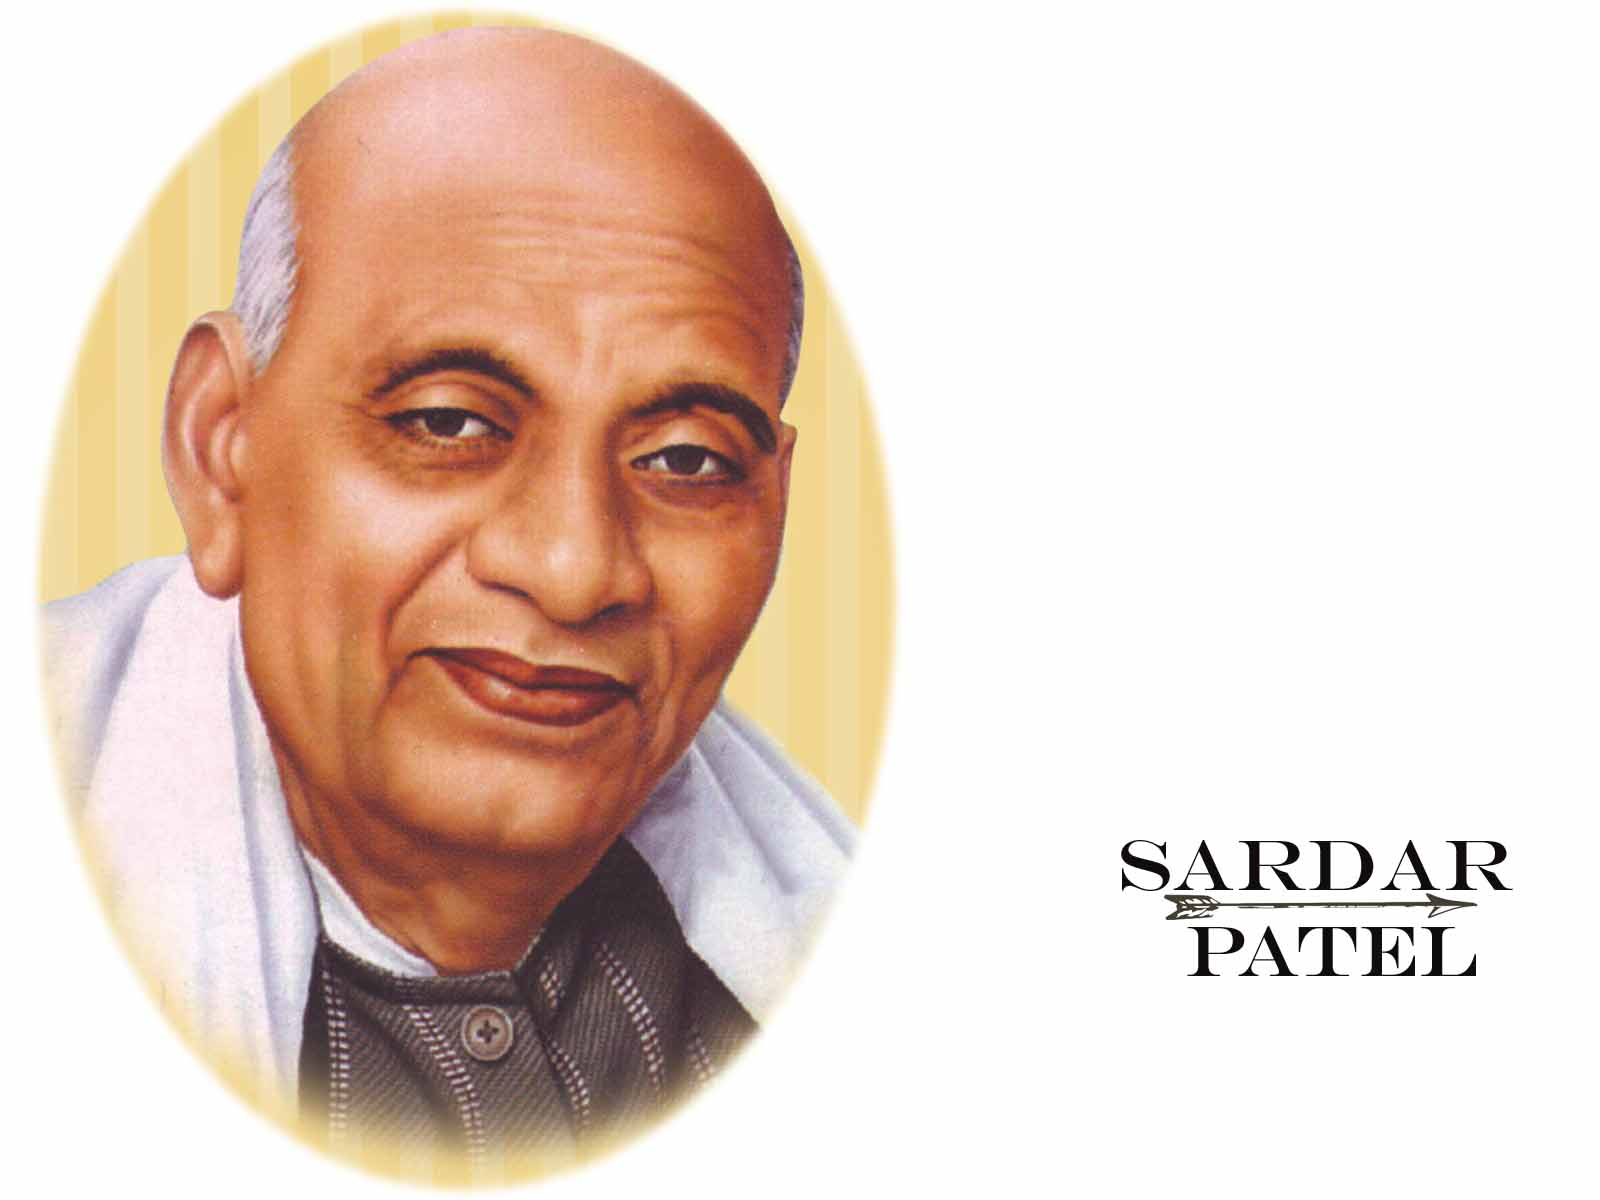 sardar vallabhbhai patel Sardar vallabhbhai patel (october 31, 1875 - december 15, 1950), popularly known as iron man was an indian barrister and statesman and one of.